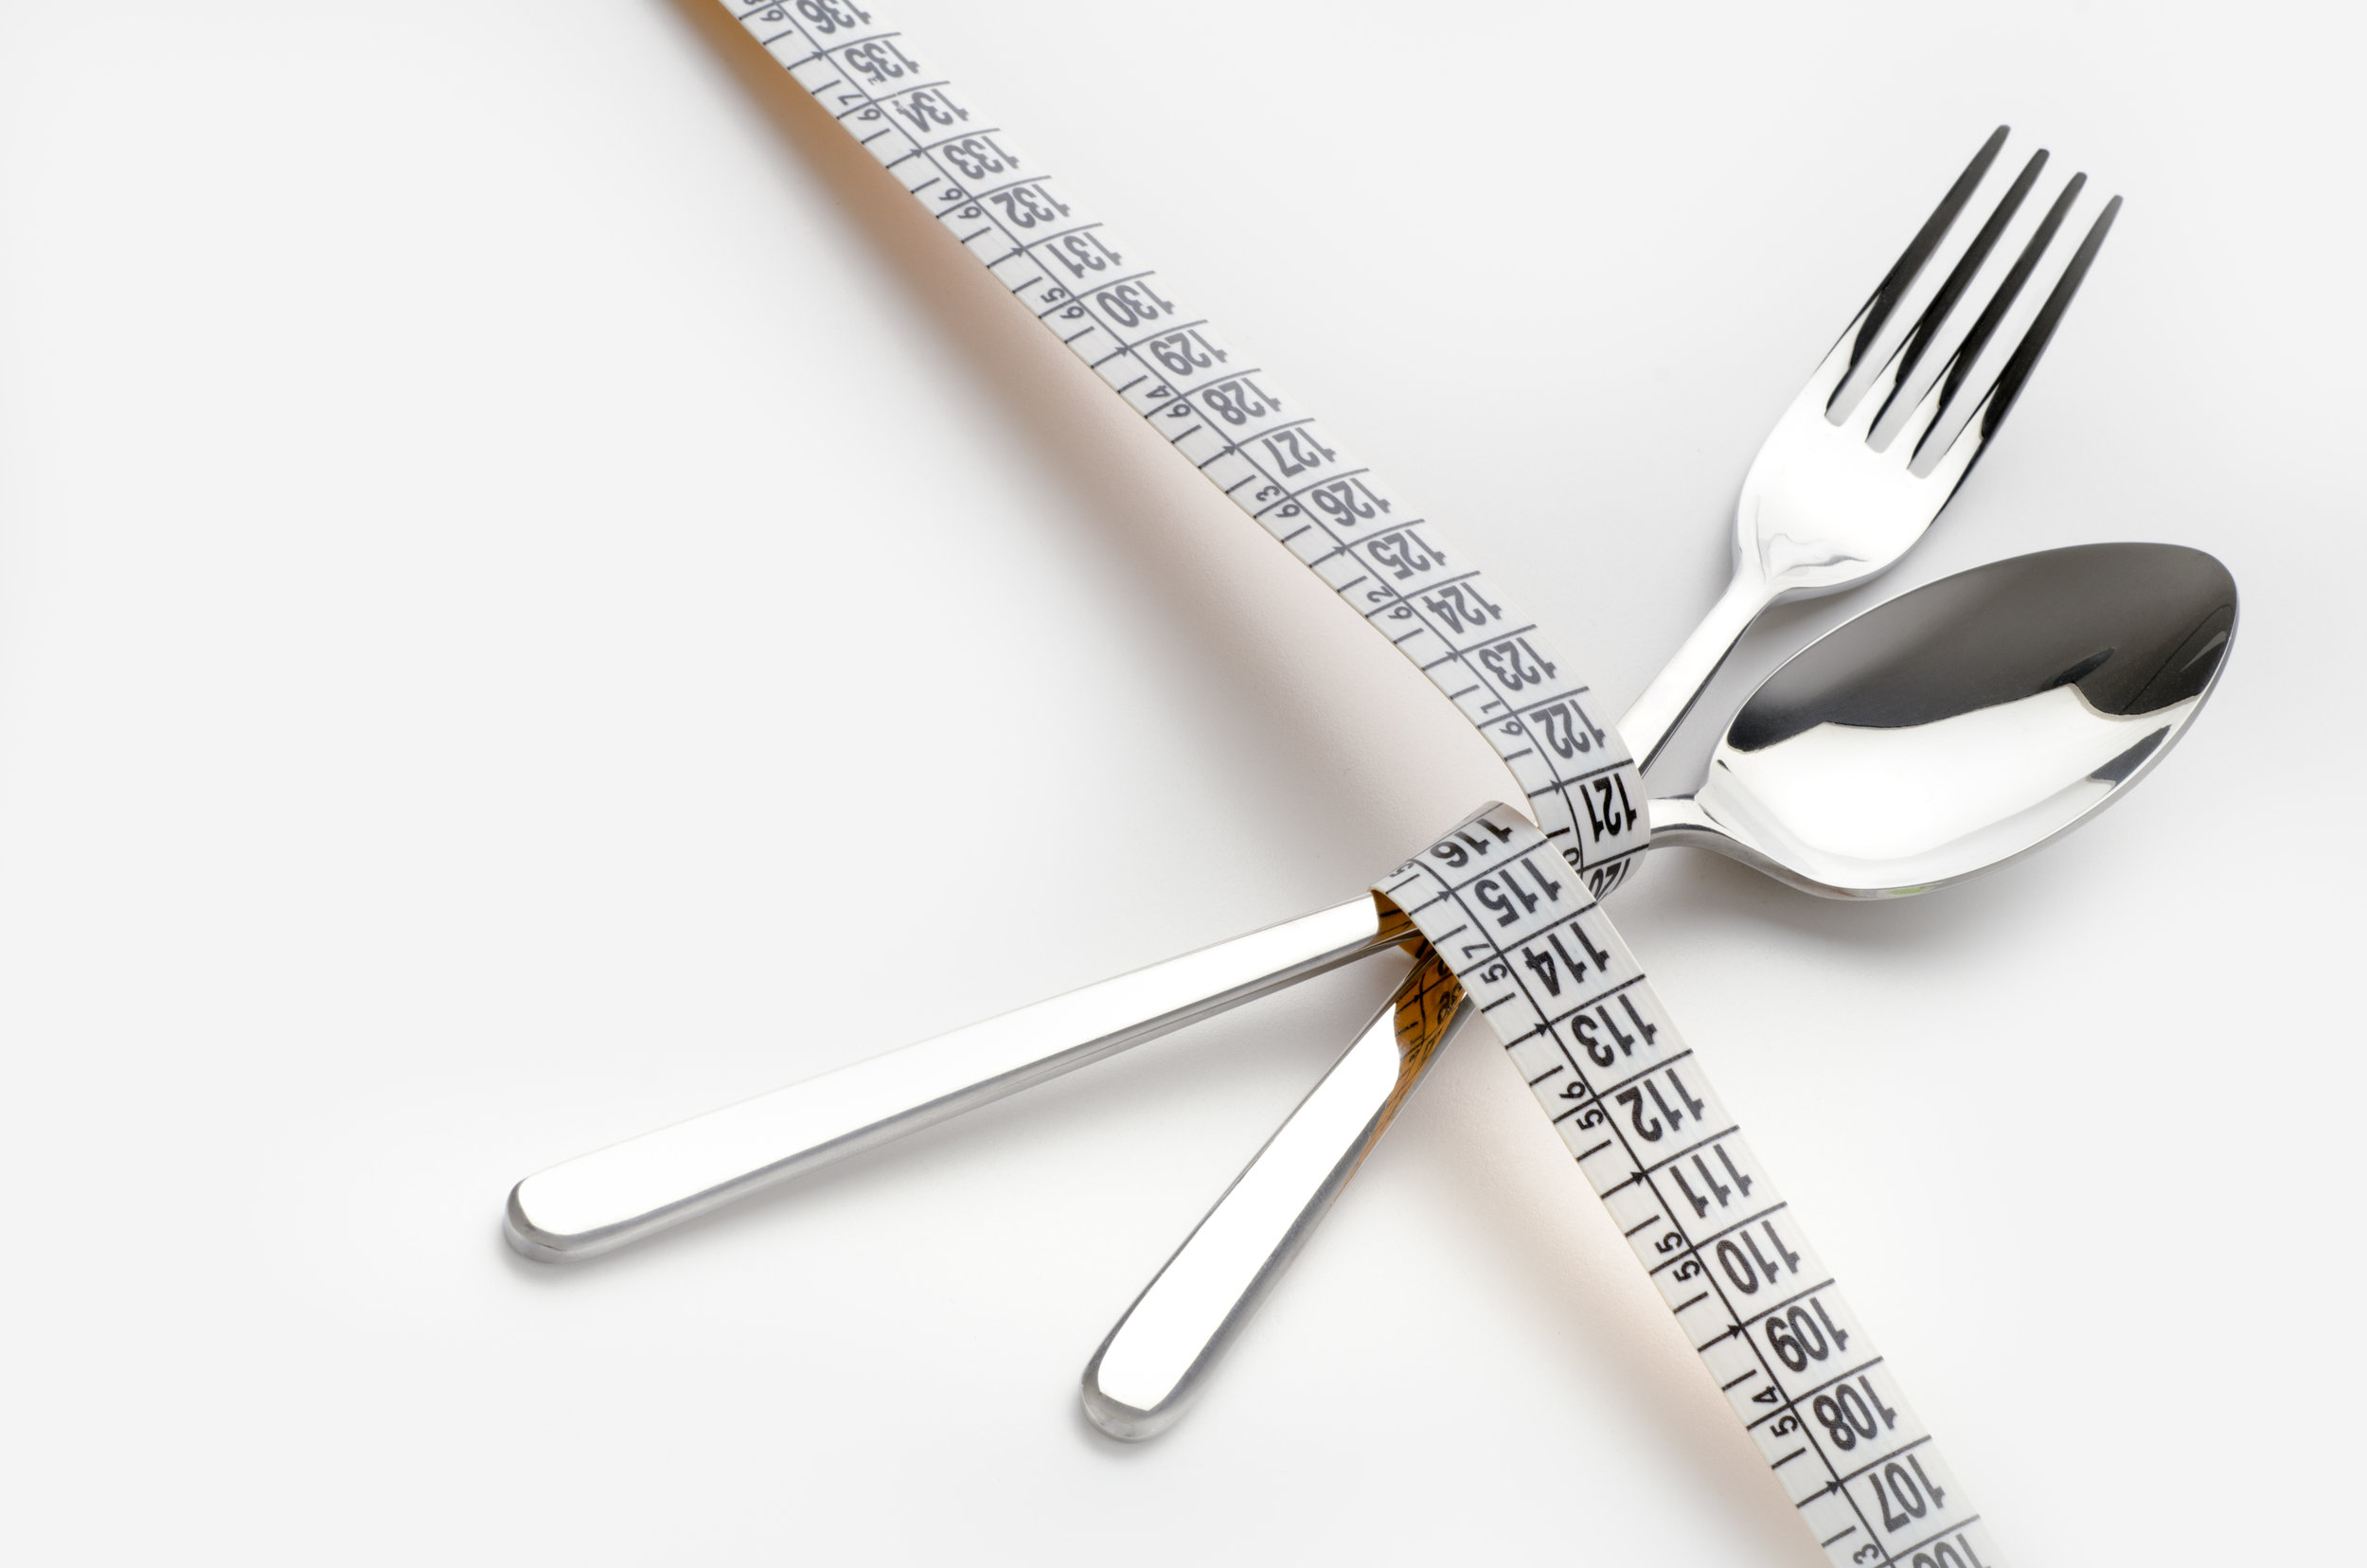 Disordered eating and body image